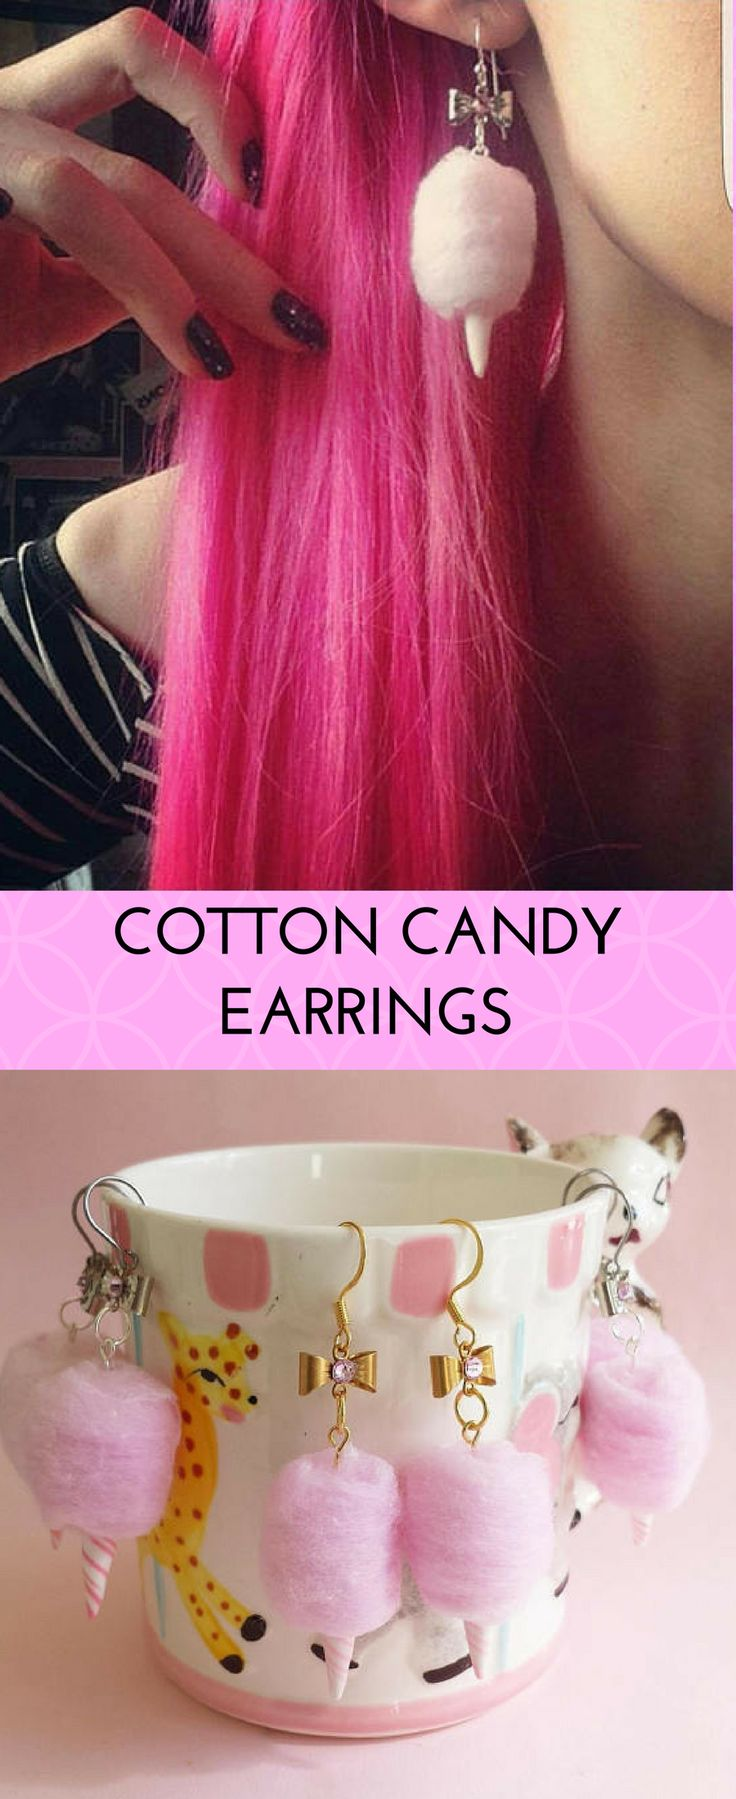 adorable cotton candy earrings! #cottoncandy #candyfloss #pink #retro #rockabilly #psychobilly #1950s #candy #jewelry #afflink